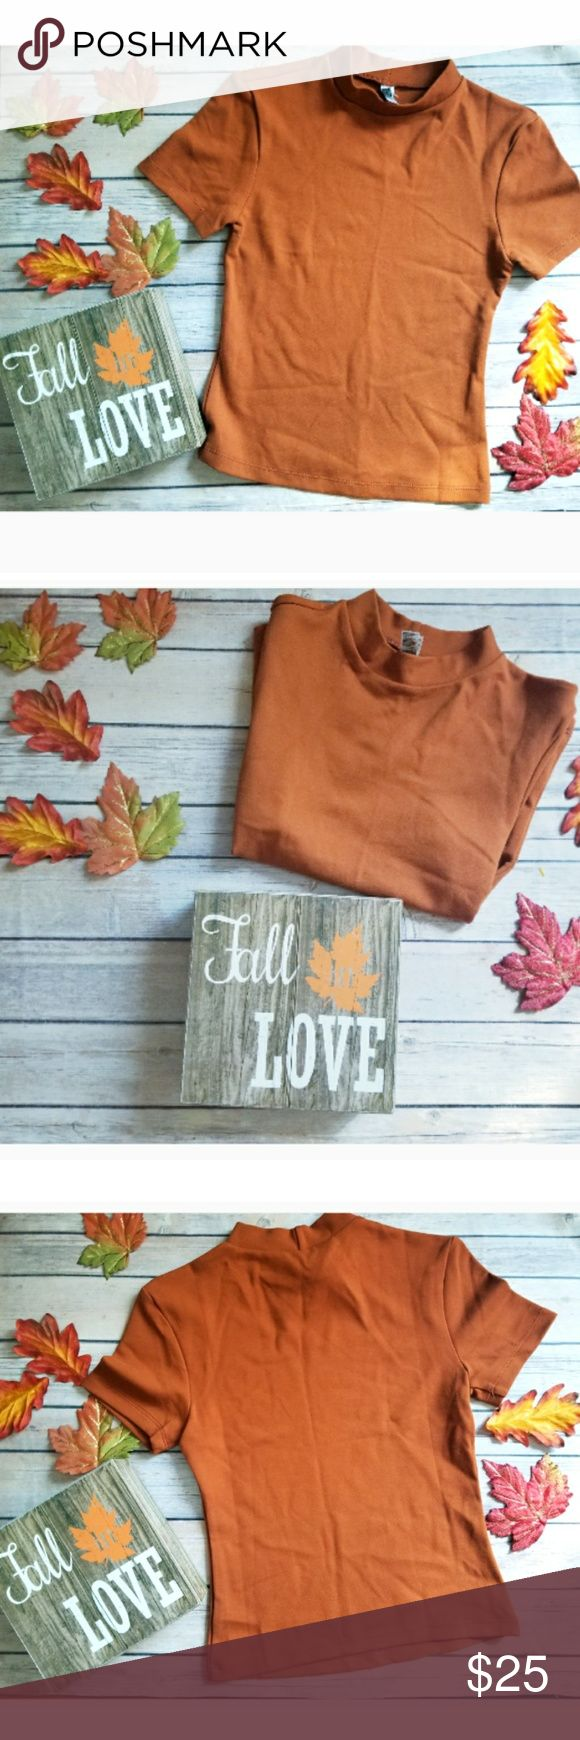 🎉American Apparel Burnt Orange Shirt🎉 Quality and cuteness? This AA rayon shirt is for you! Beautiful burnt Orange color for this season! Perfectly paired with jeans and boots or a long skirt and heels. Like new. American Apparel Tops